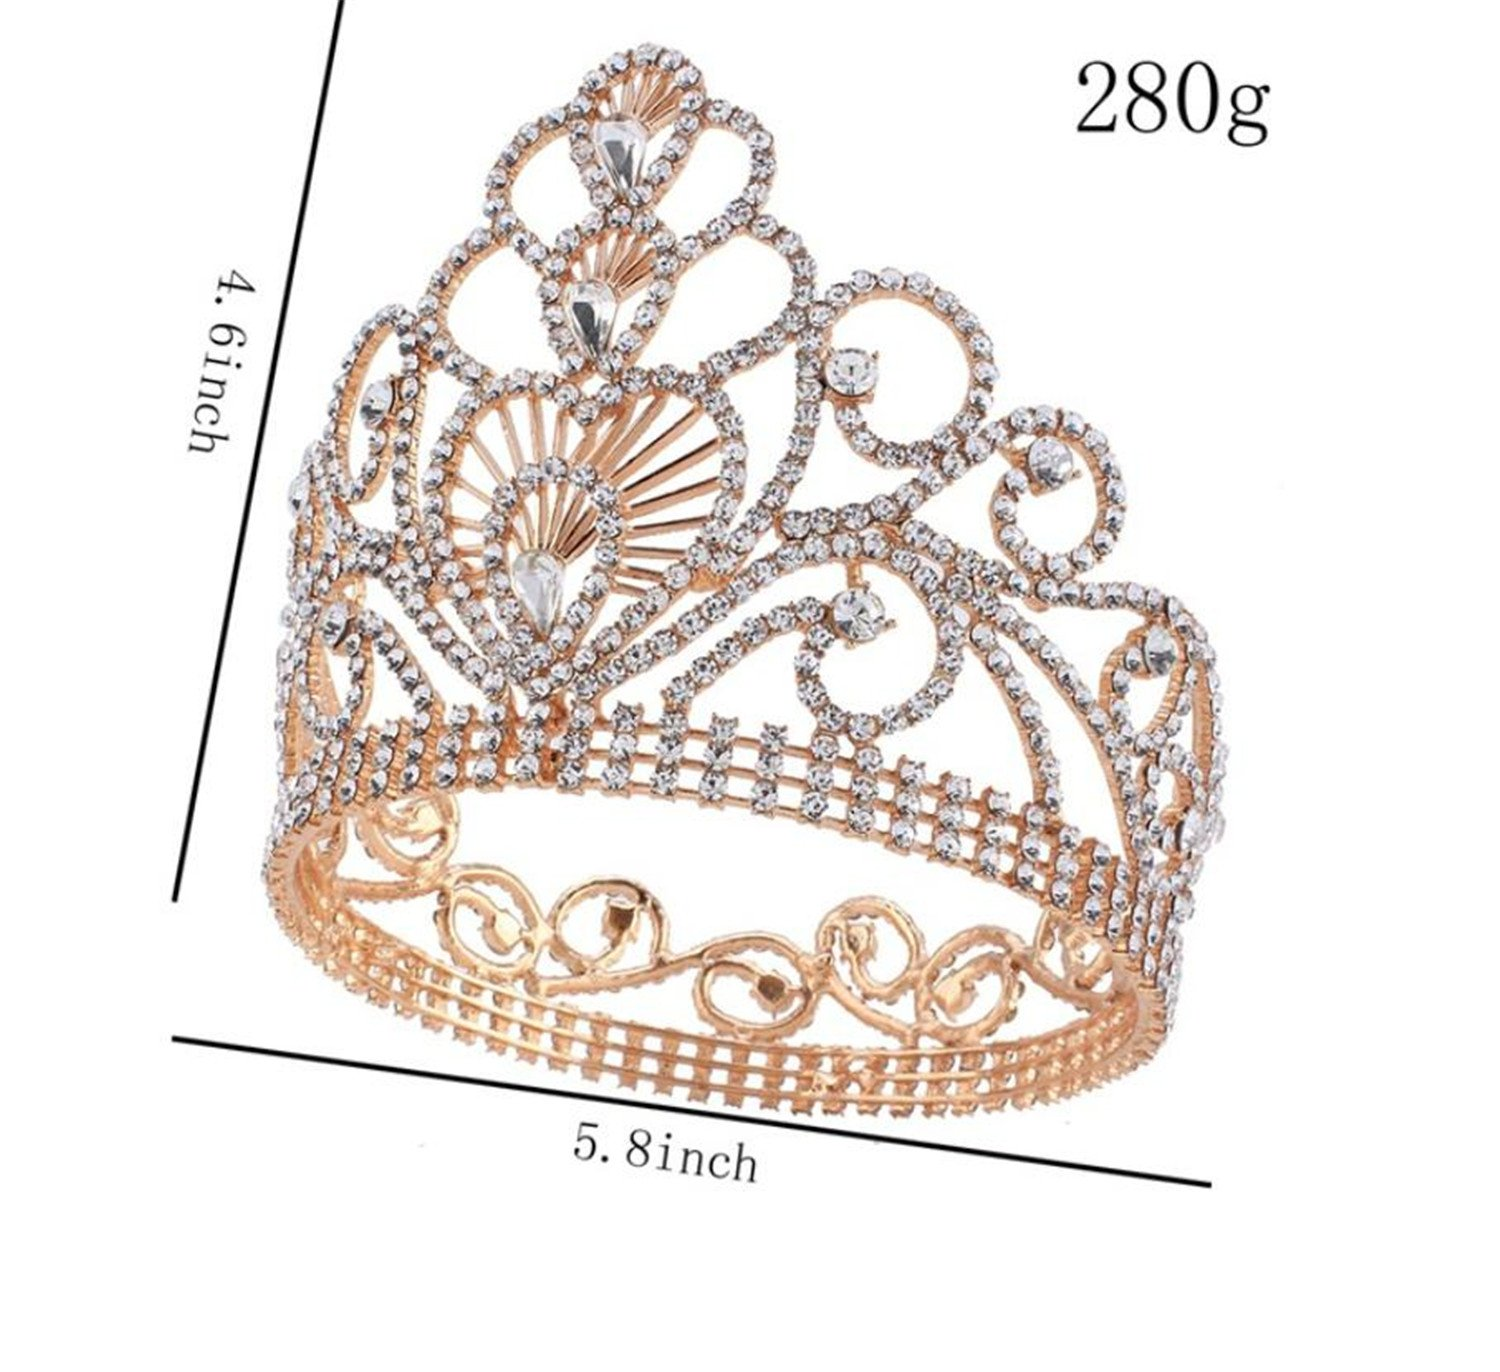 Wiipu 4.6'' High Round Royal Sparkly Rhinestones Tiaras Crowns,5.8'' Diameter(A1367) (Gold) by WIIPU (Image #4)